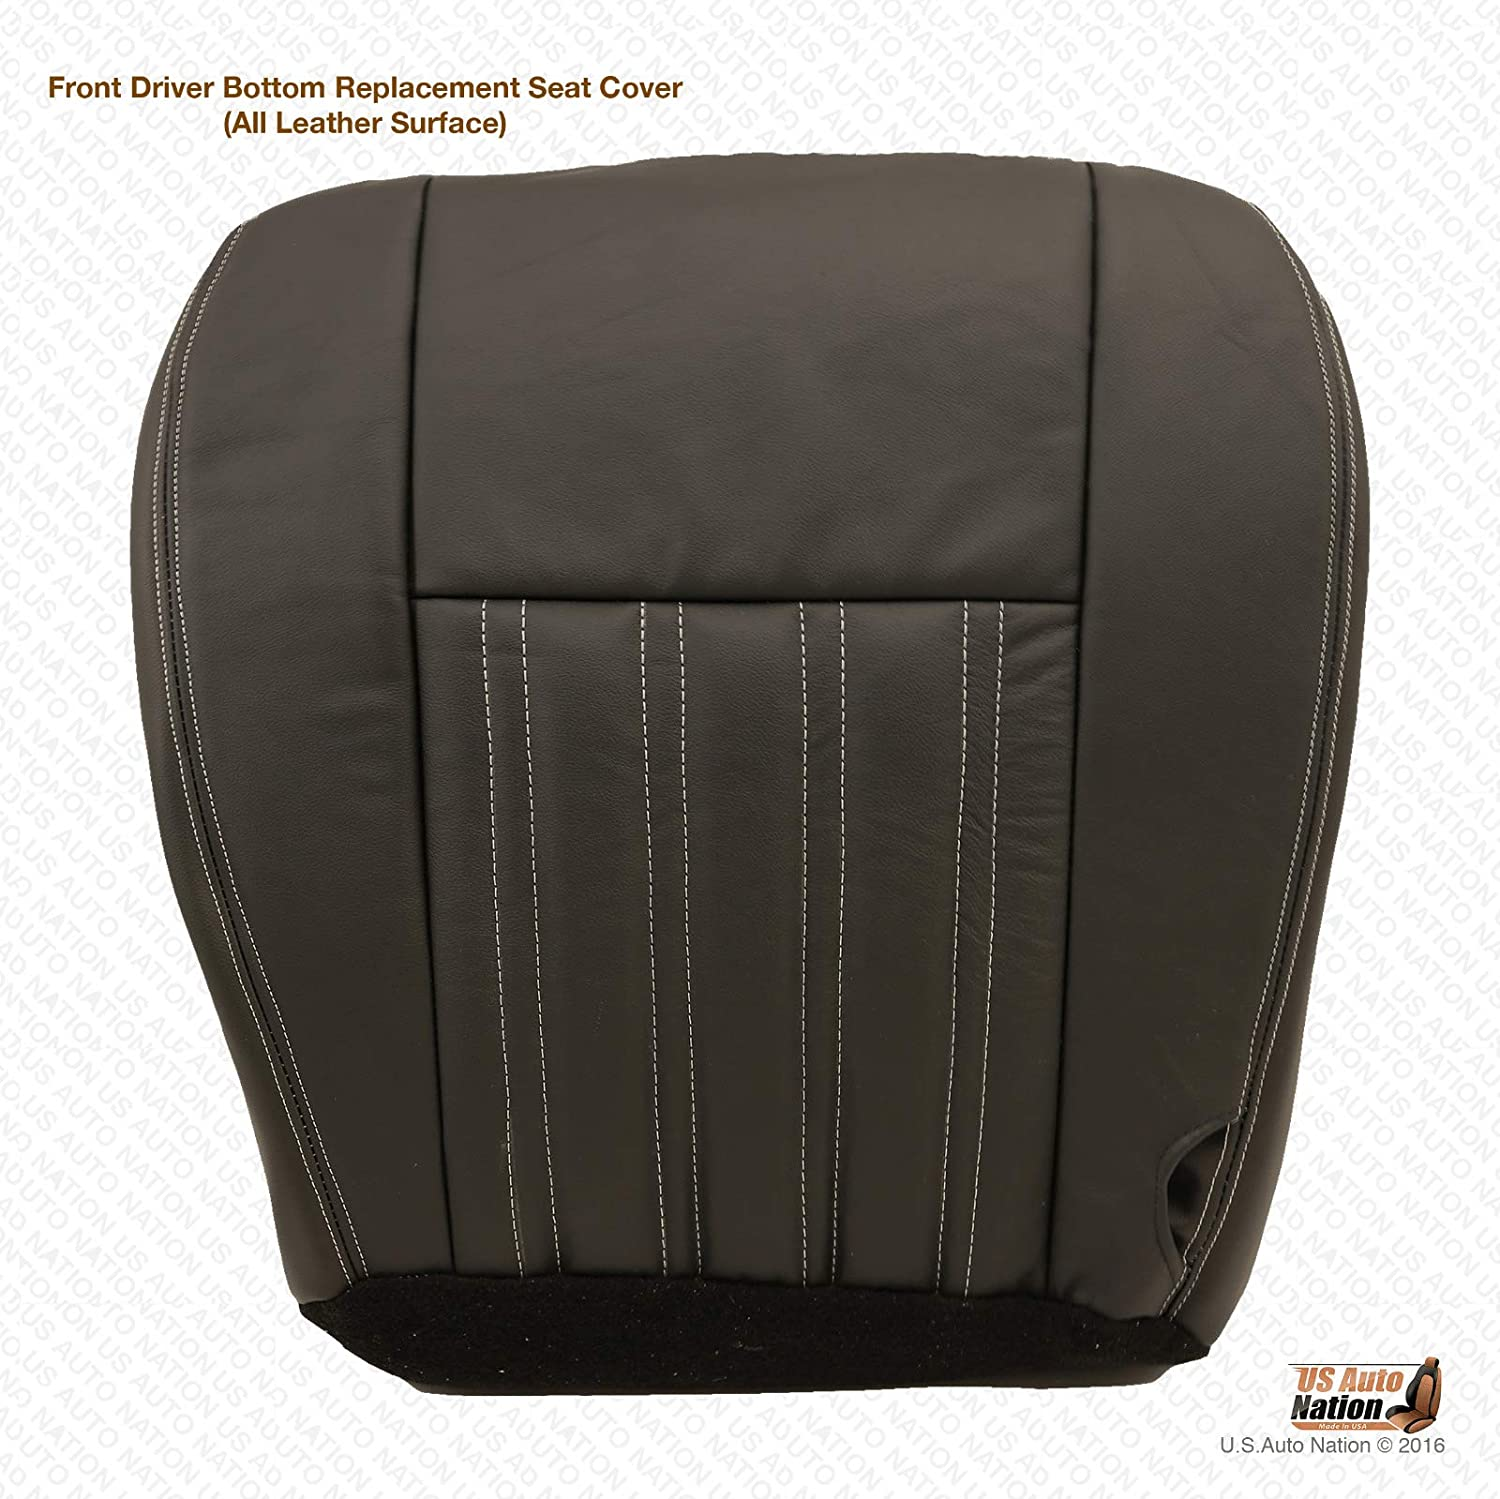 2004 Ford F250 Harley-Davidson CrewCab Passenger Bottom Leather Seat Cover Black